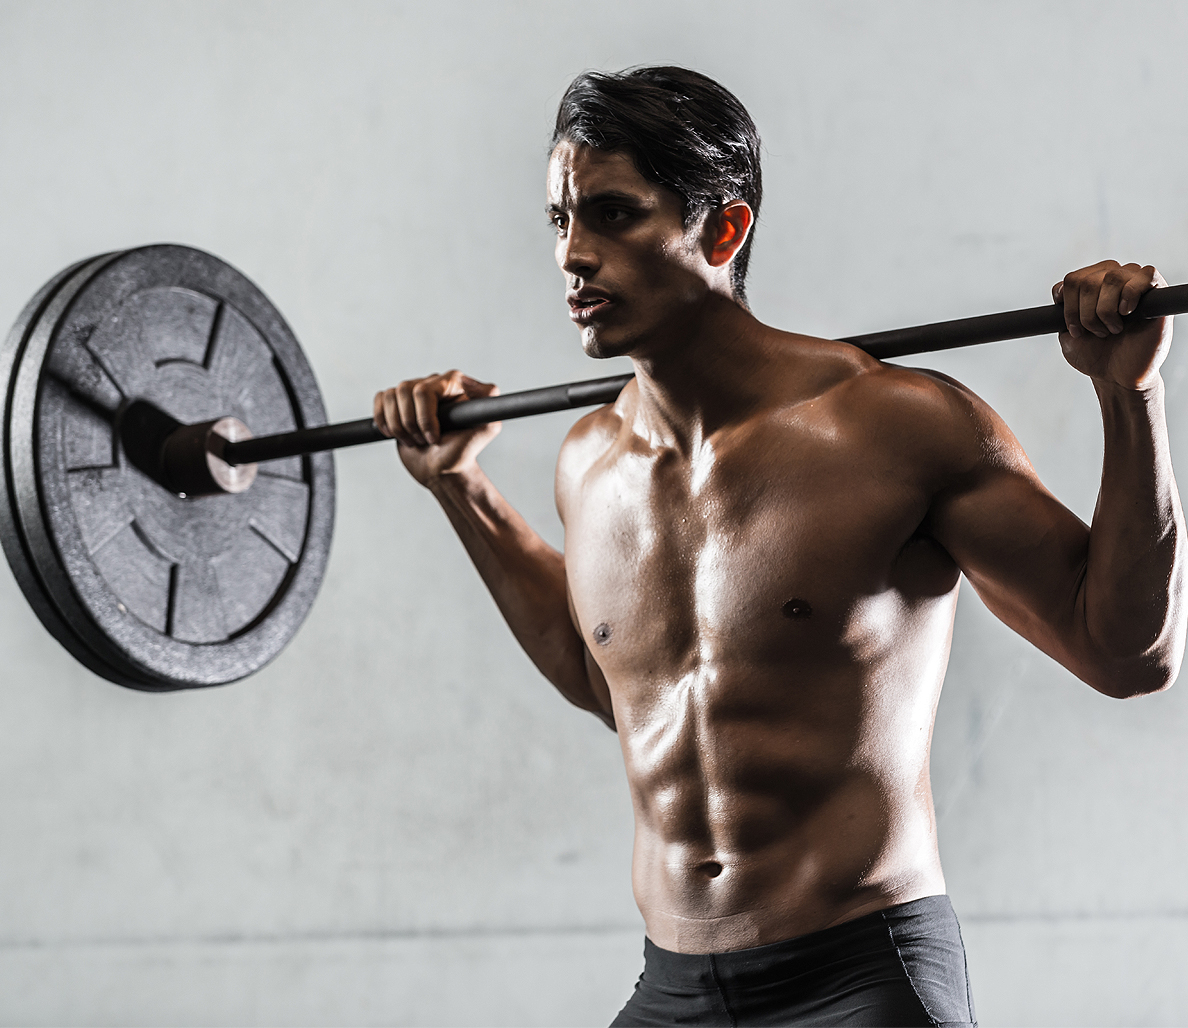 The 8 Best Strength Training Apps for Your Workouts